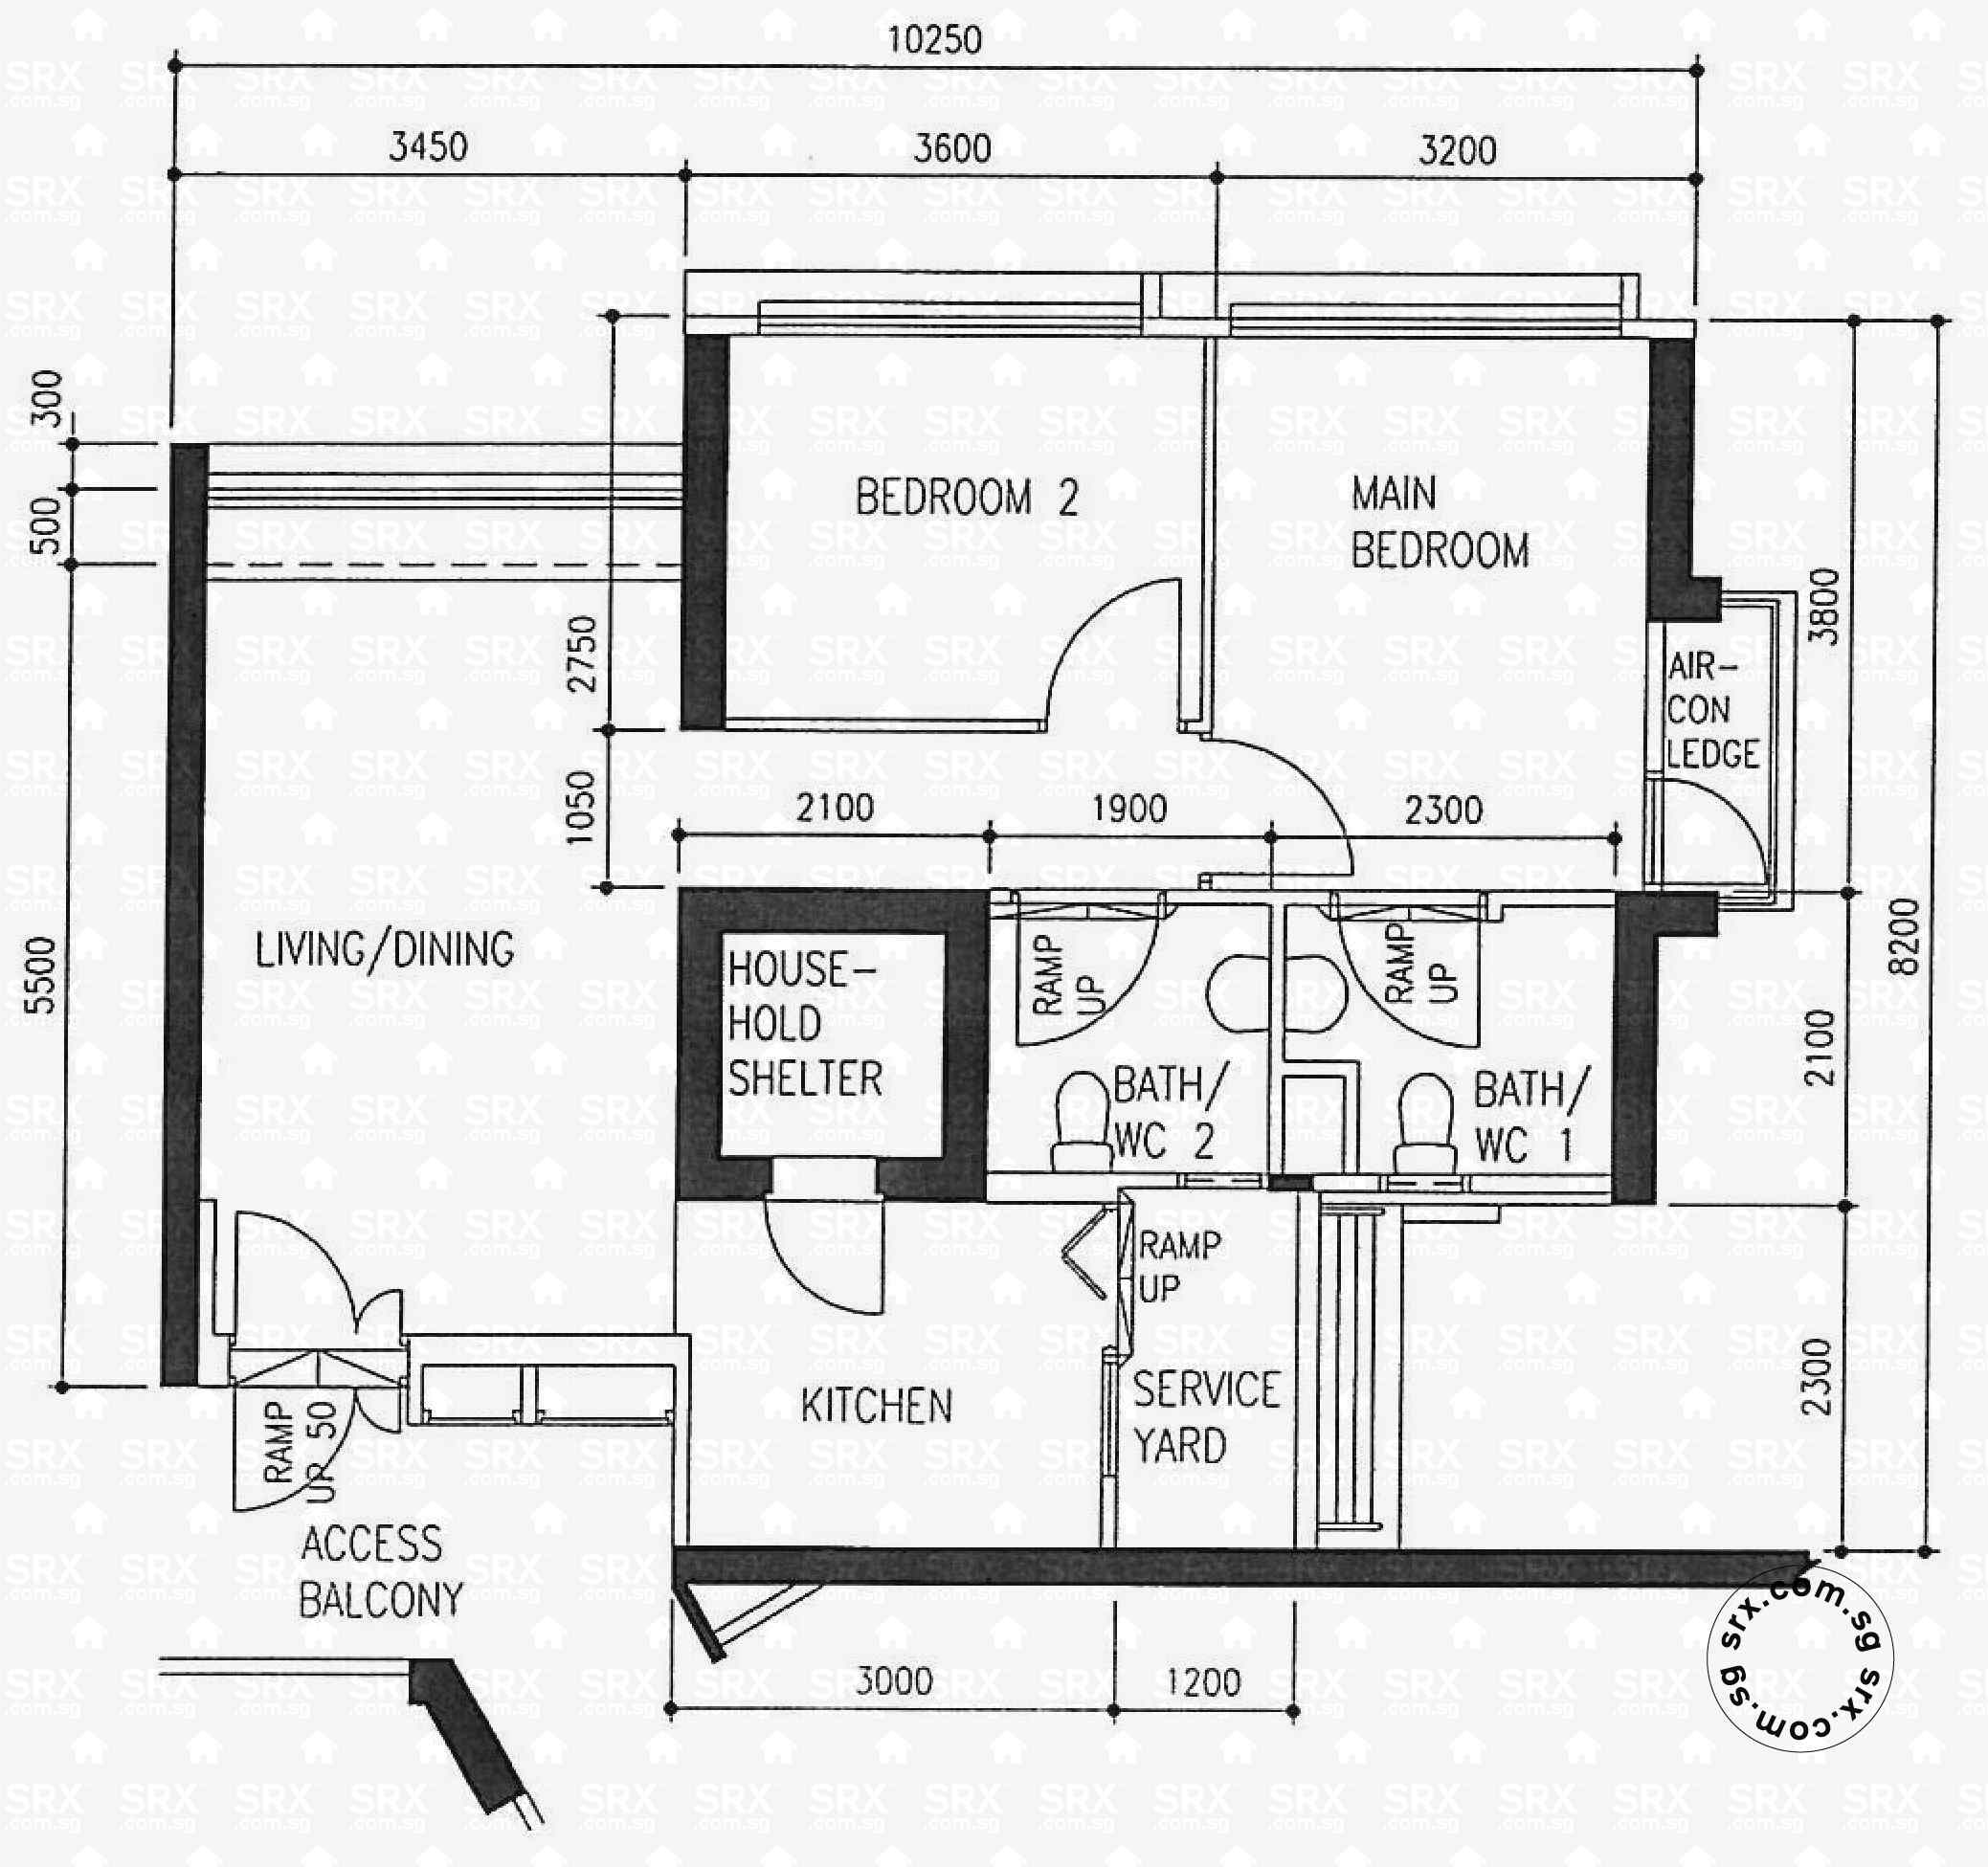 Floor Plans For Havelock Road HDB Details SRX Property - View floor plans